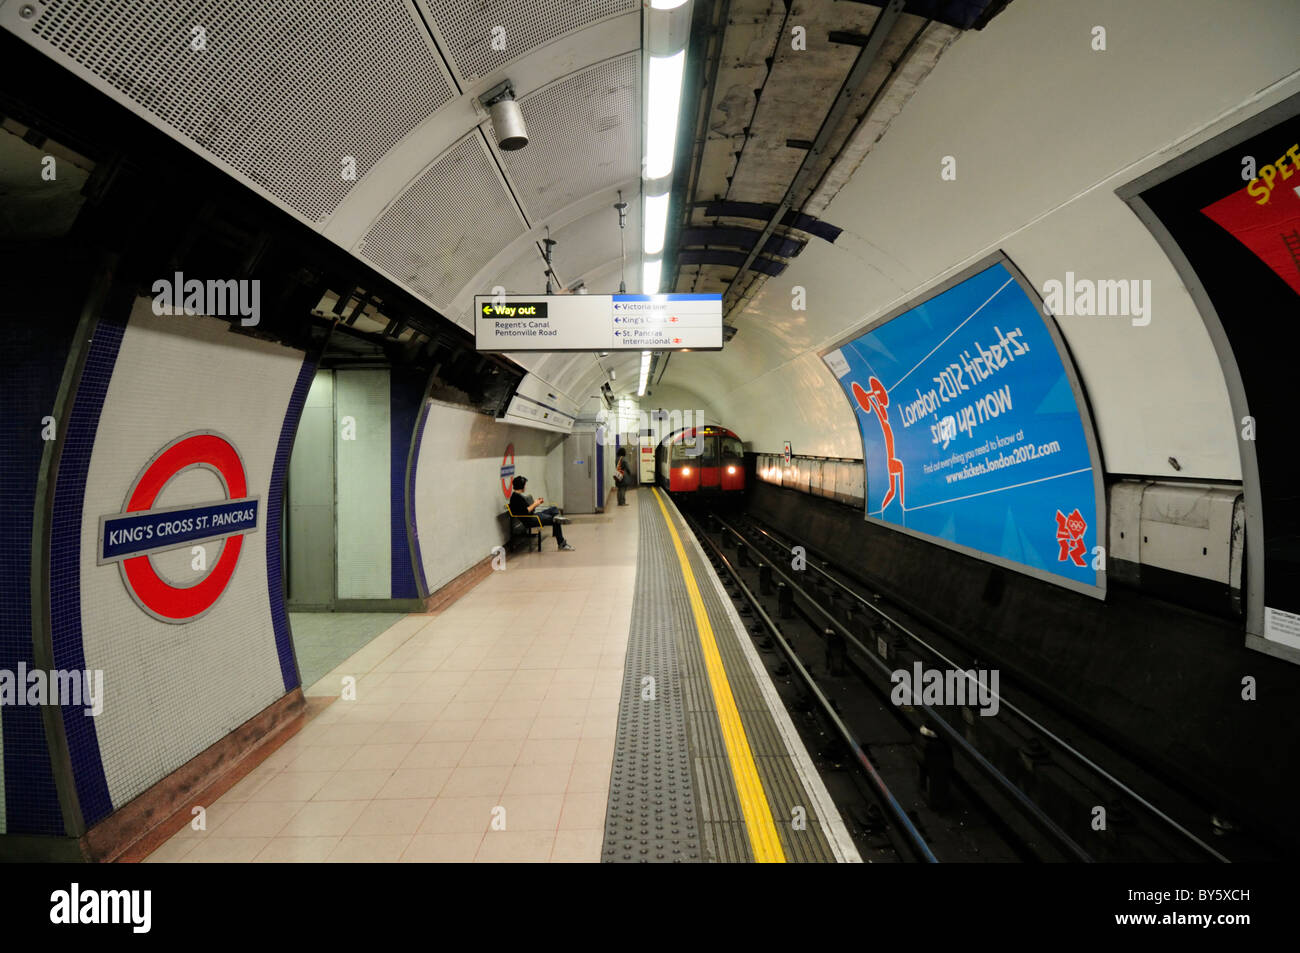 King's Cross St Pancras Underground Tube Station Piccadilly Line Platform, London, England, UK - Stock Image